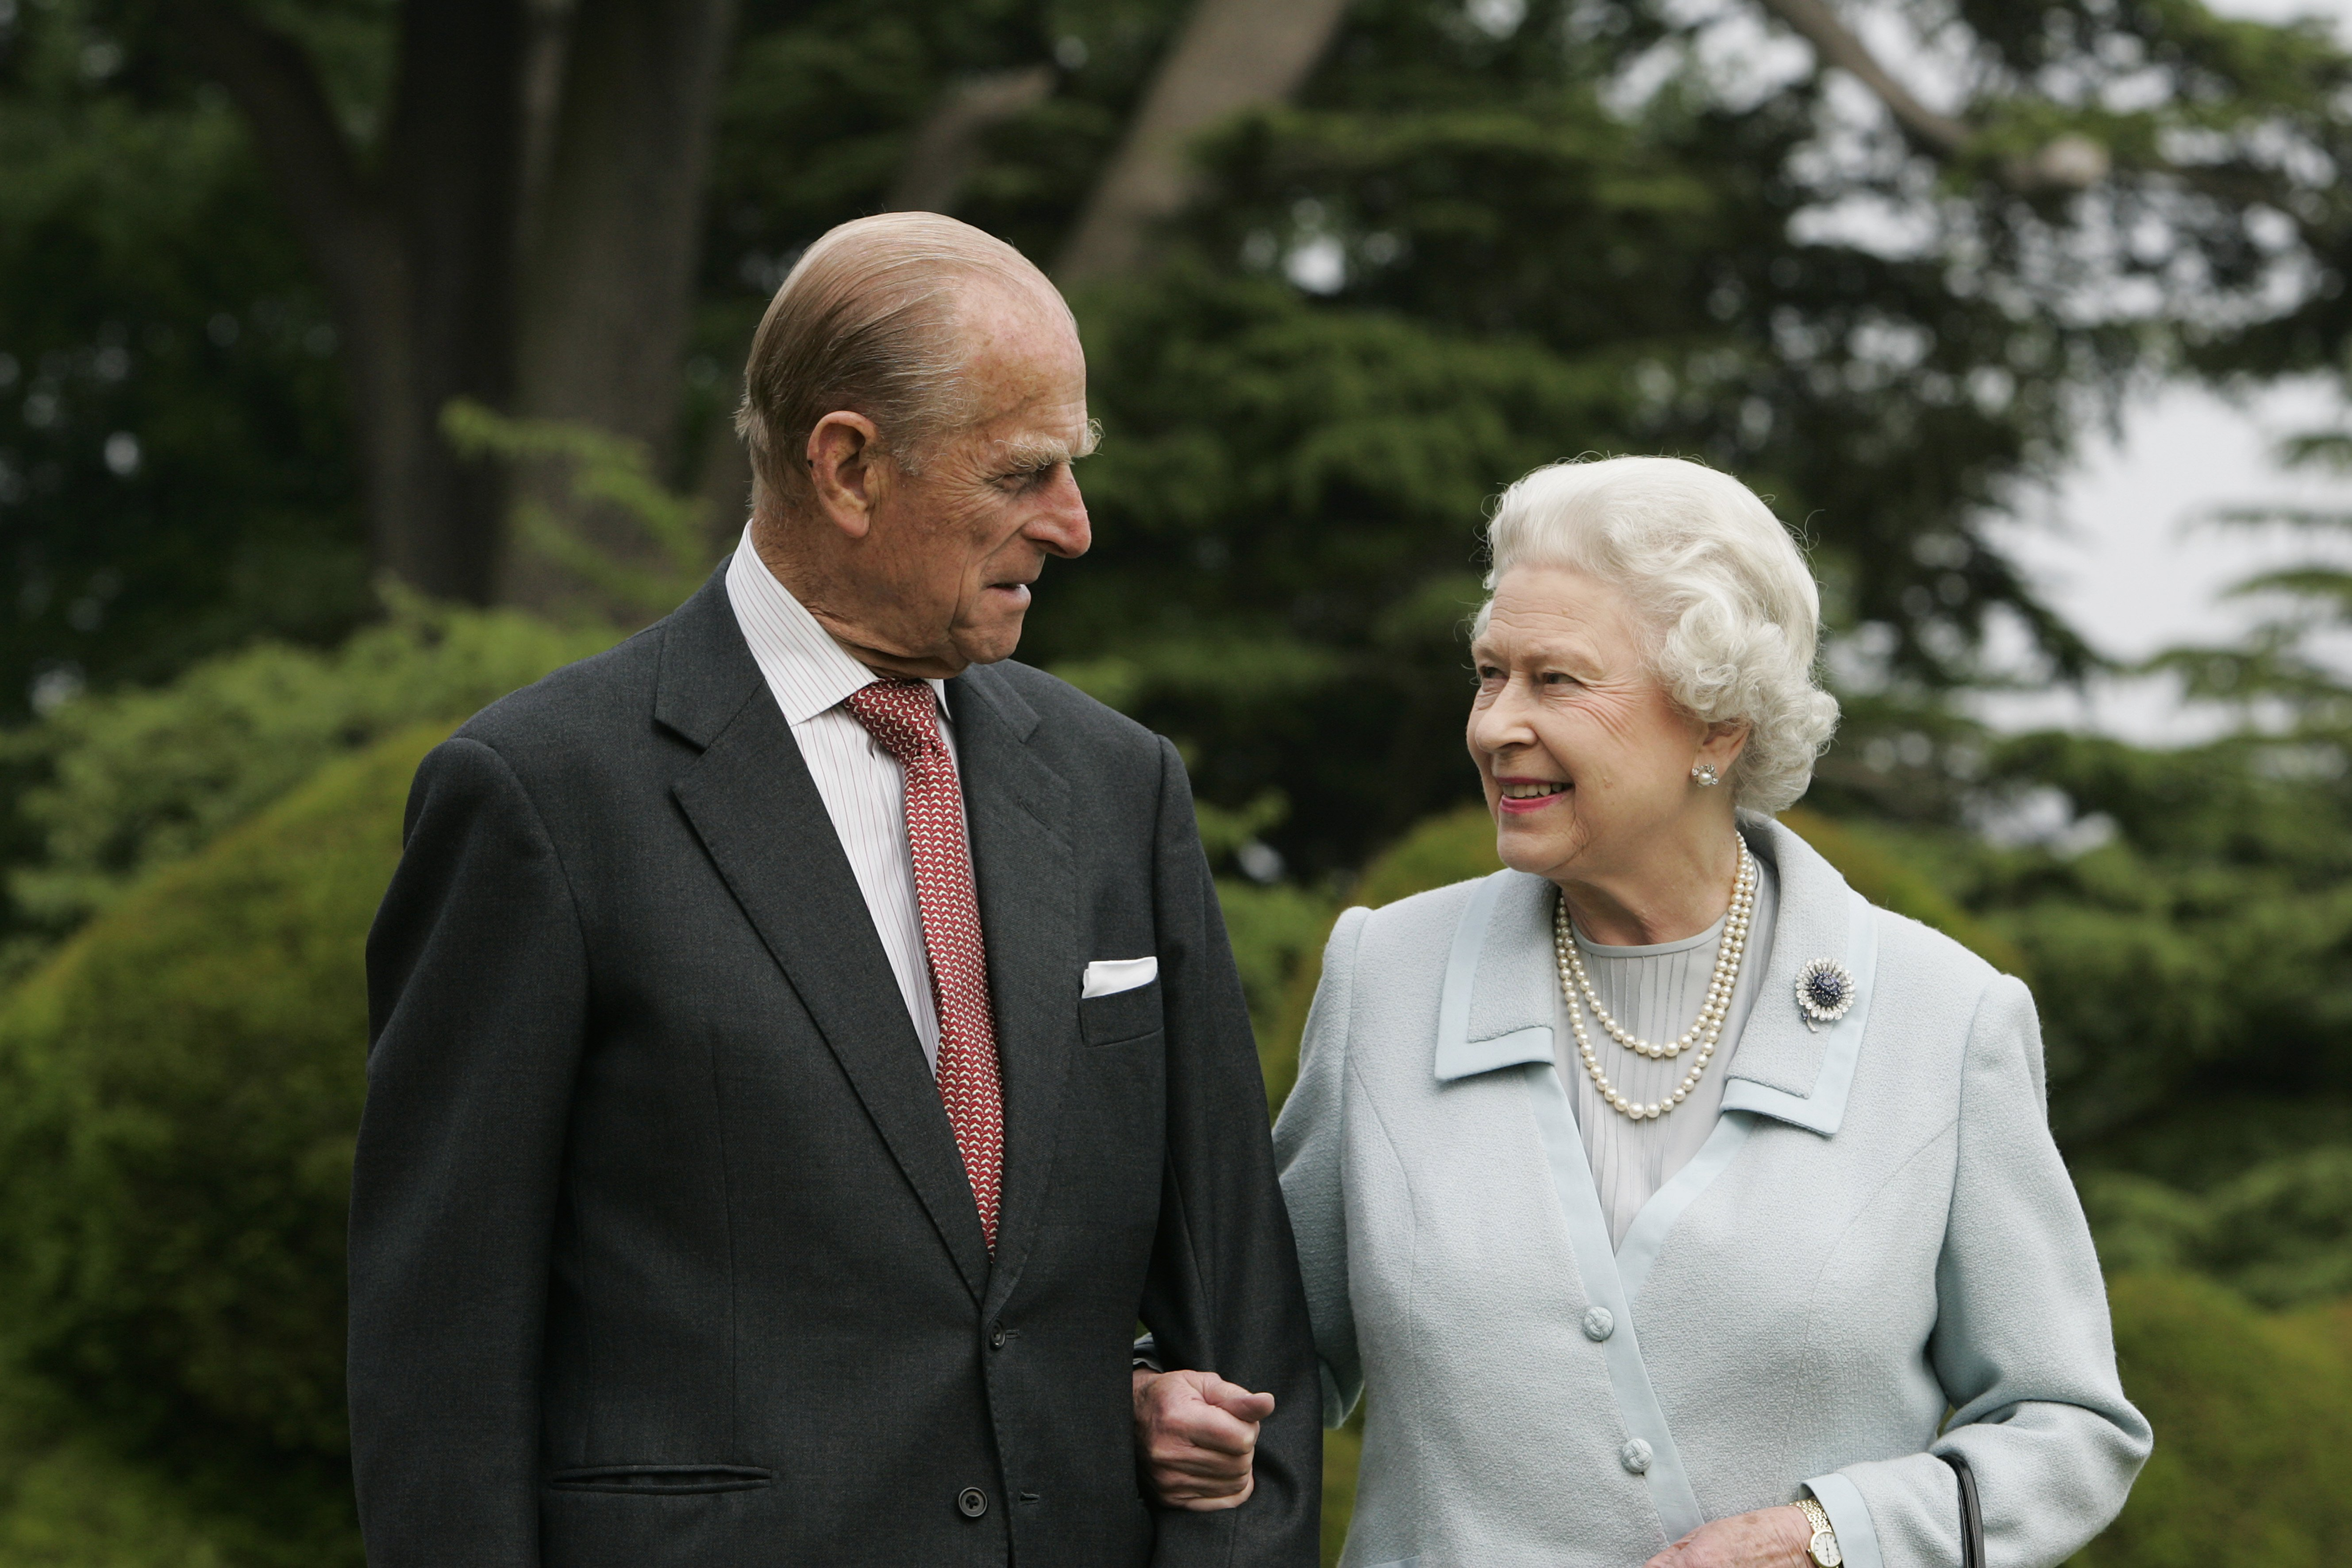 The Queen Elizabeth II and Prince Philip re-visit Broadlands, to mark their Diamond Wedding Anniversary on November 20, 1947   Photo: Getty Images